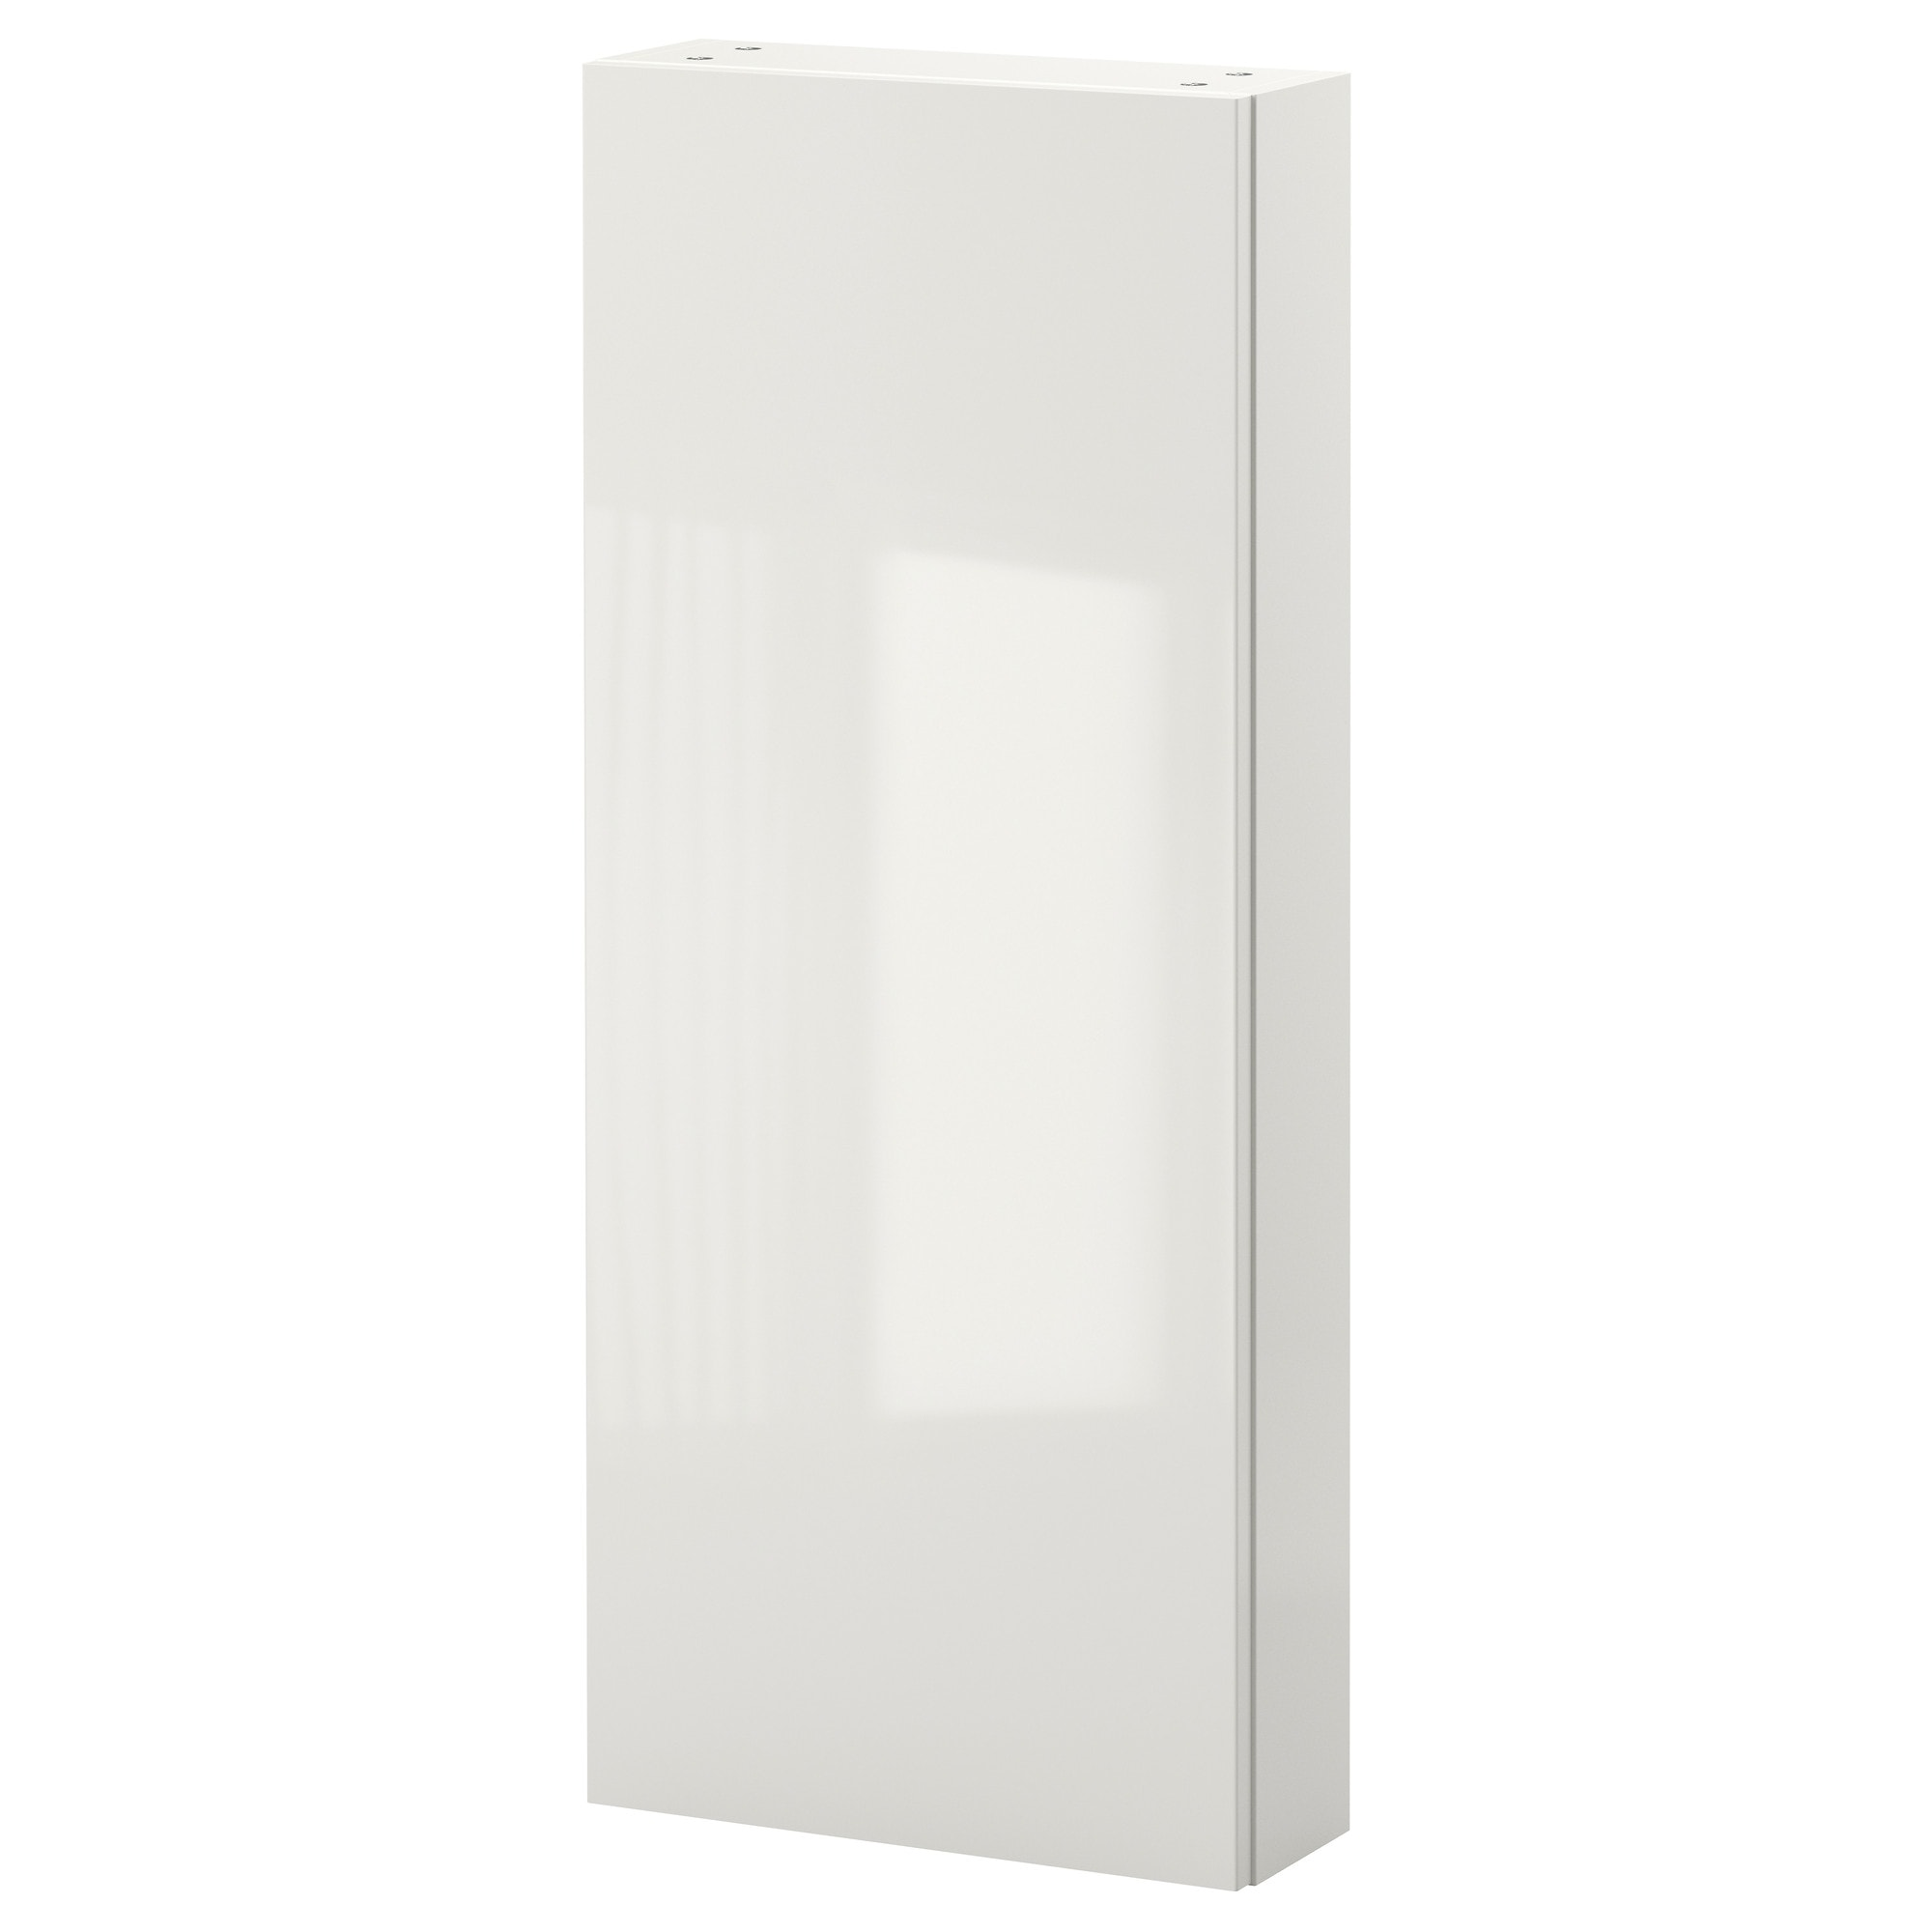 Bathroom wall cabinets ikea - Bathroom Wall Cabinets Ikea 15